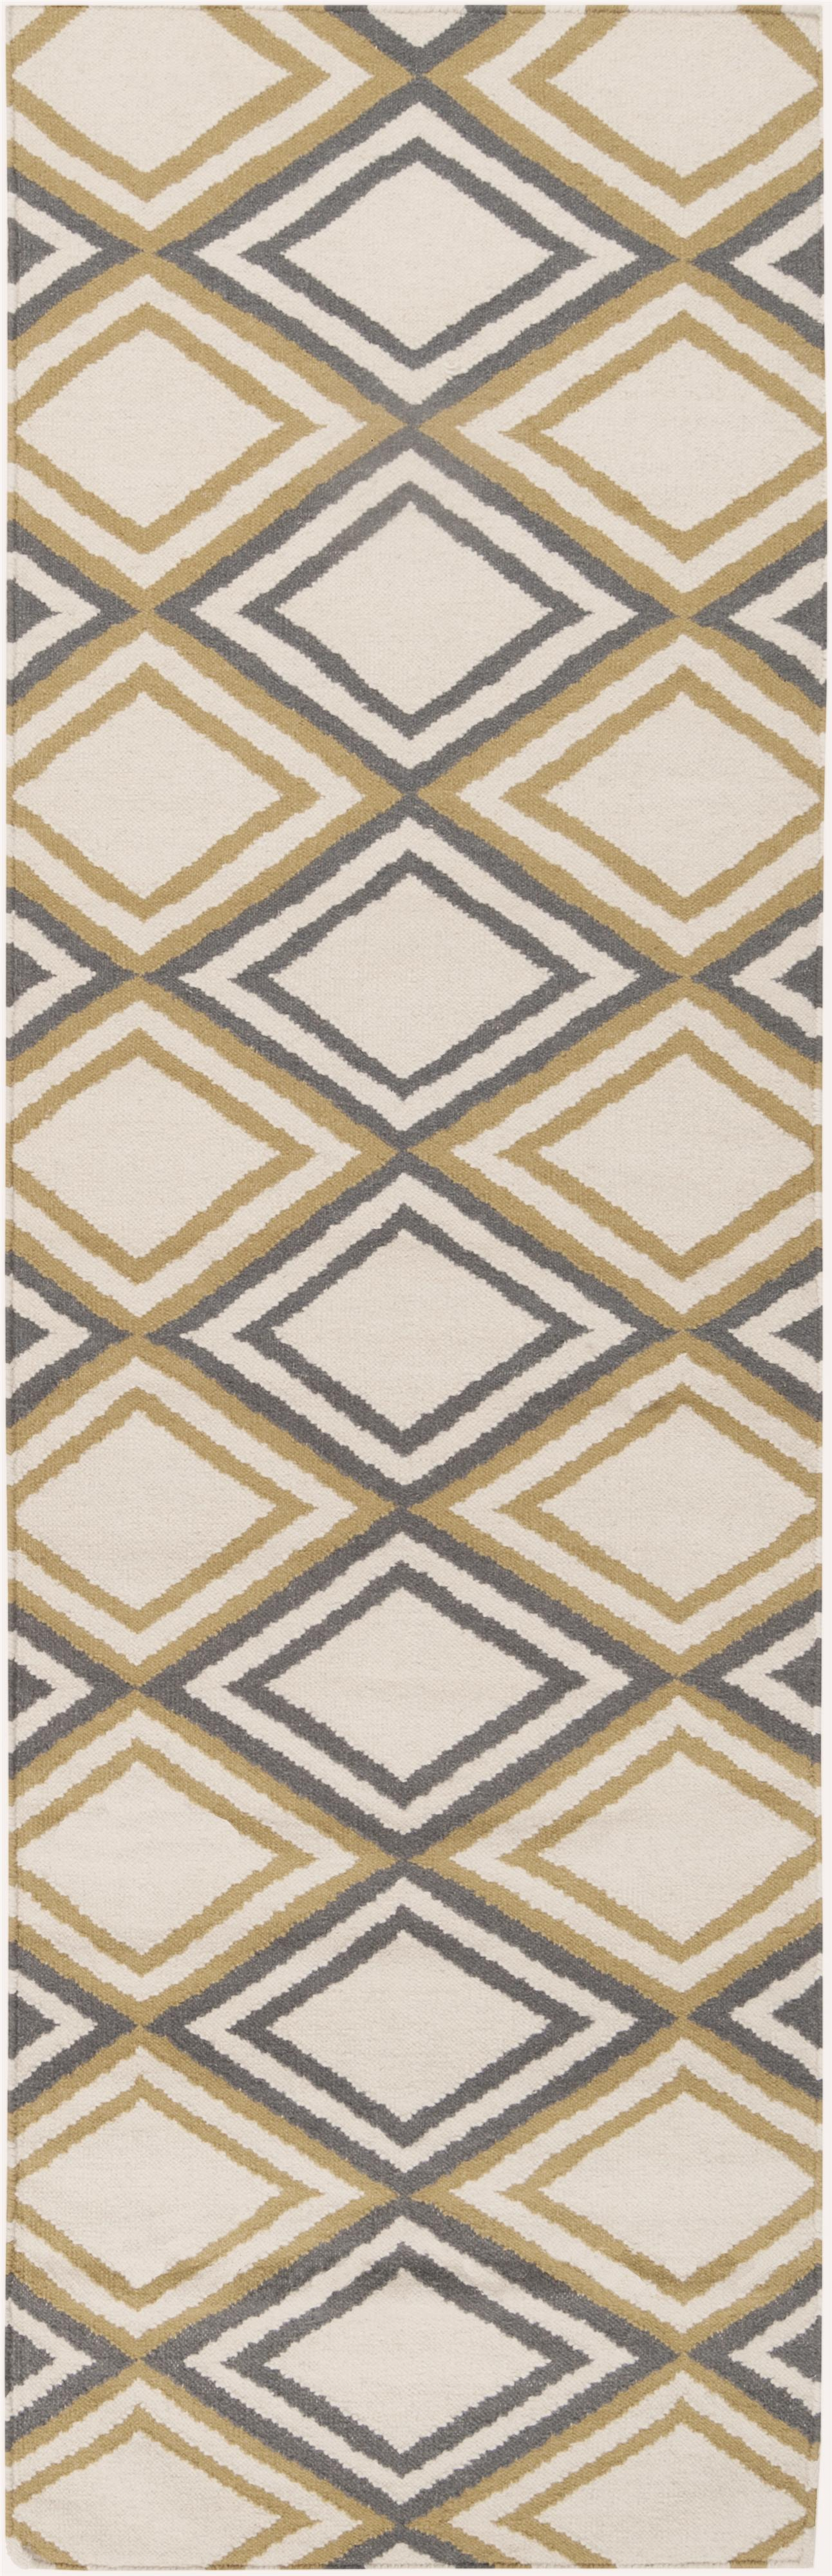 "Surya Rugs Frontier 2'6"" x 8' - Item Number: FT85-268"